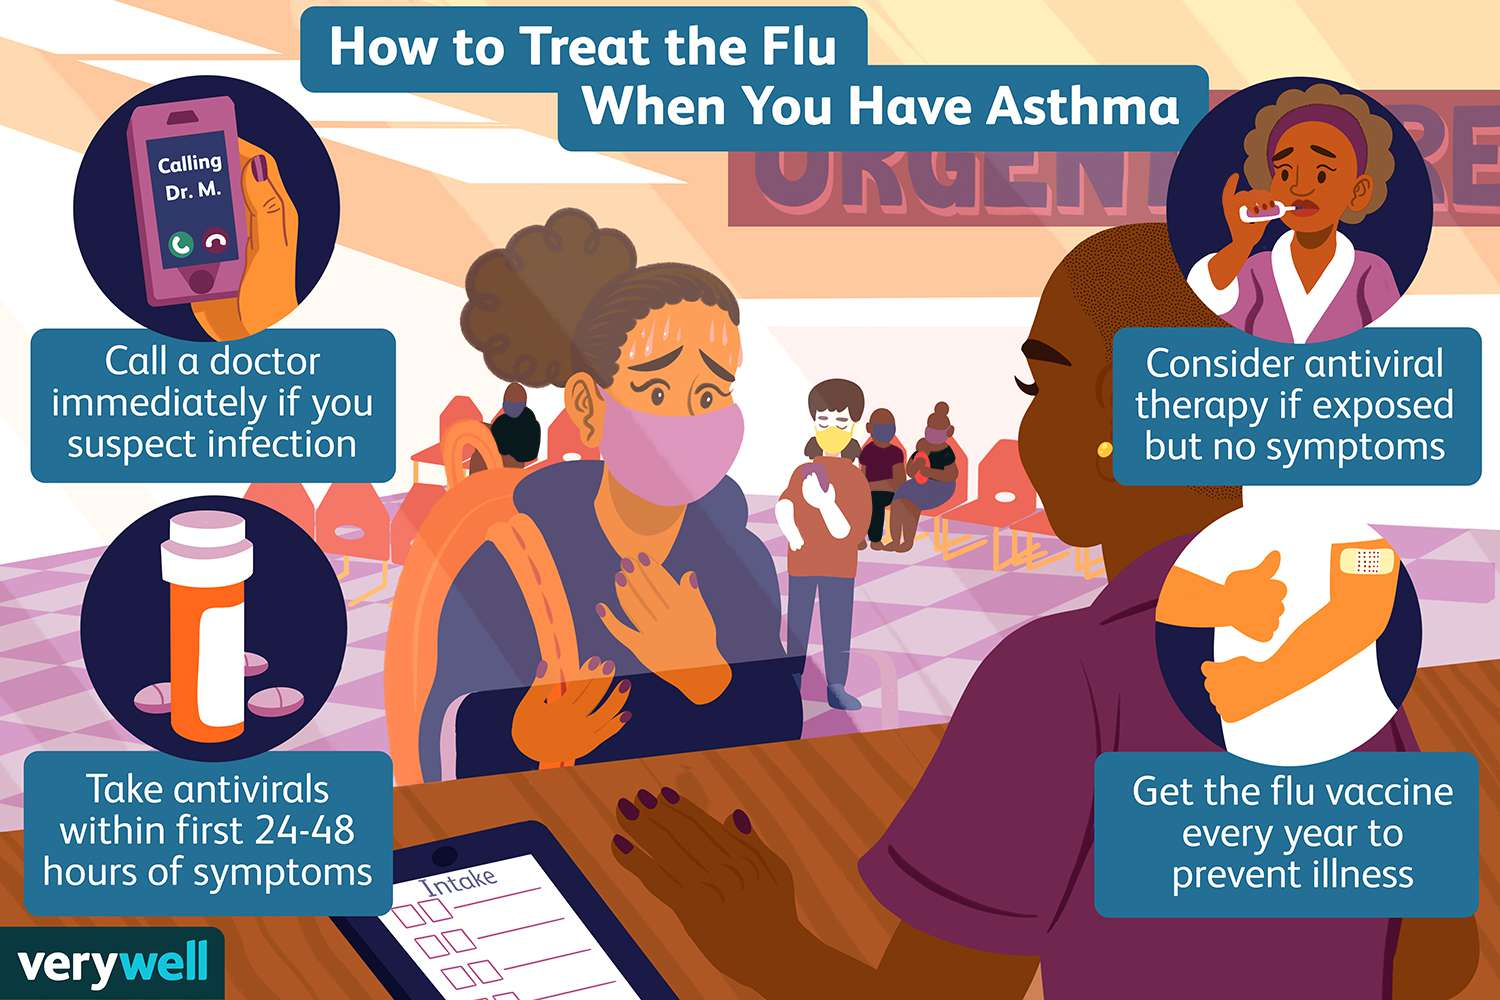 How to Treat the Flue When You Have Asthma